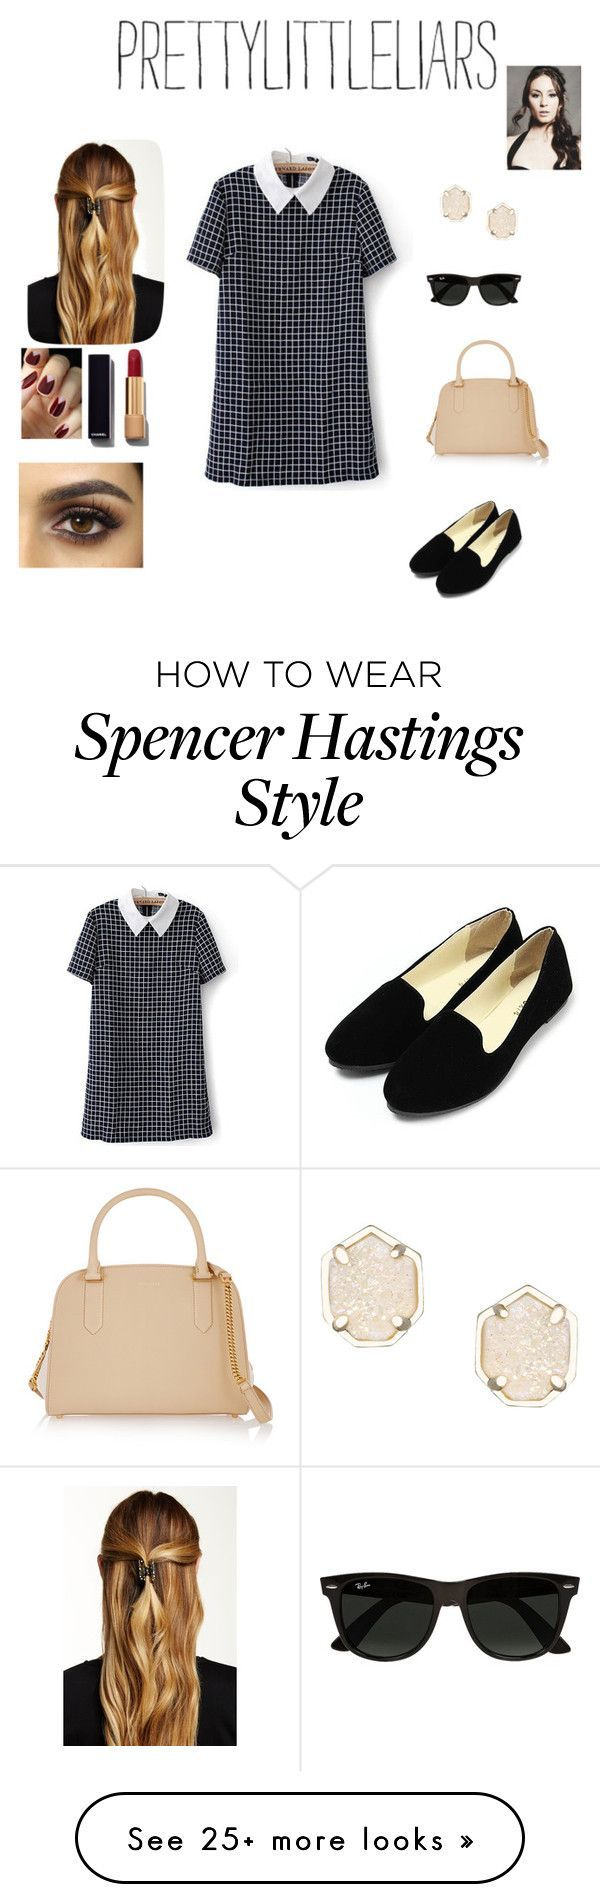 """Spencer Hastings"" by annieb0bannie on Polyvore featuring Kendra Scott, Nina Ricci, Ray-Ban, Natasha Accessories, Chanel, dress, pll, CelebrityStyle and TroianBellisario"